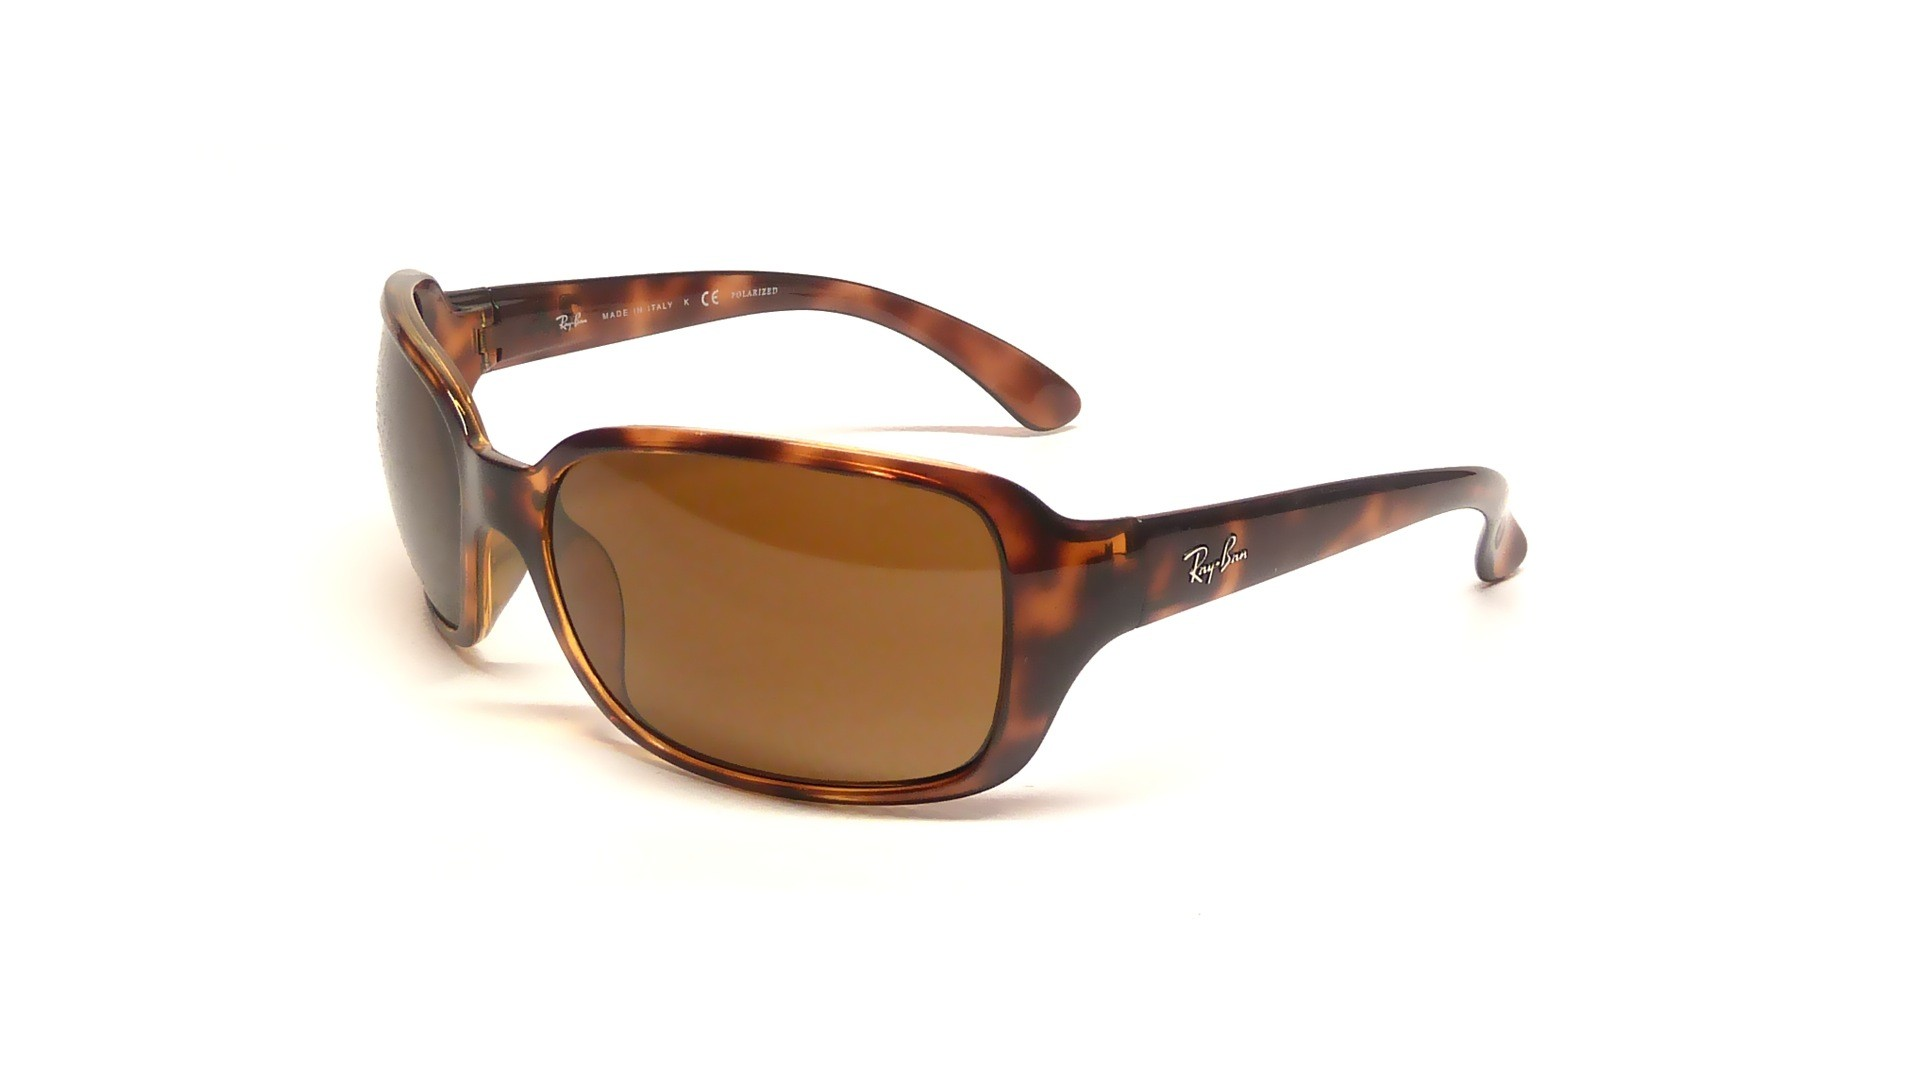 Lunette Ray Ban 4068 Www Tapdance Org